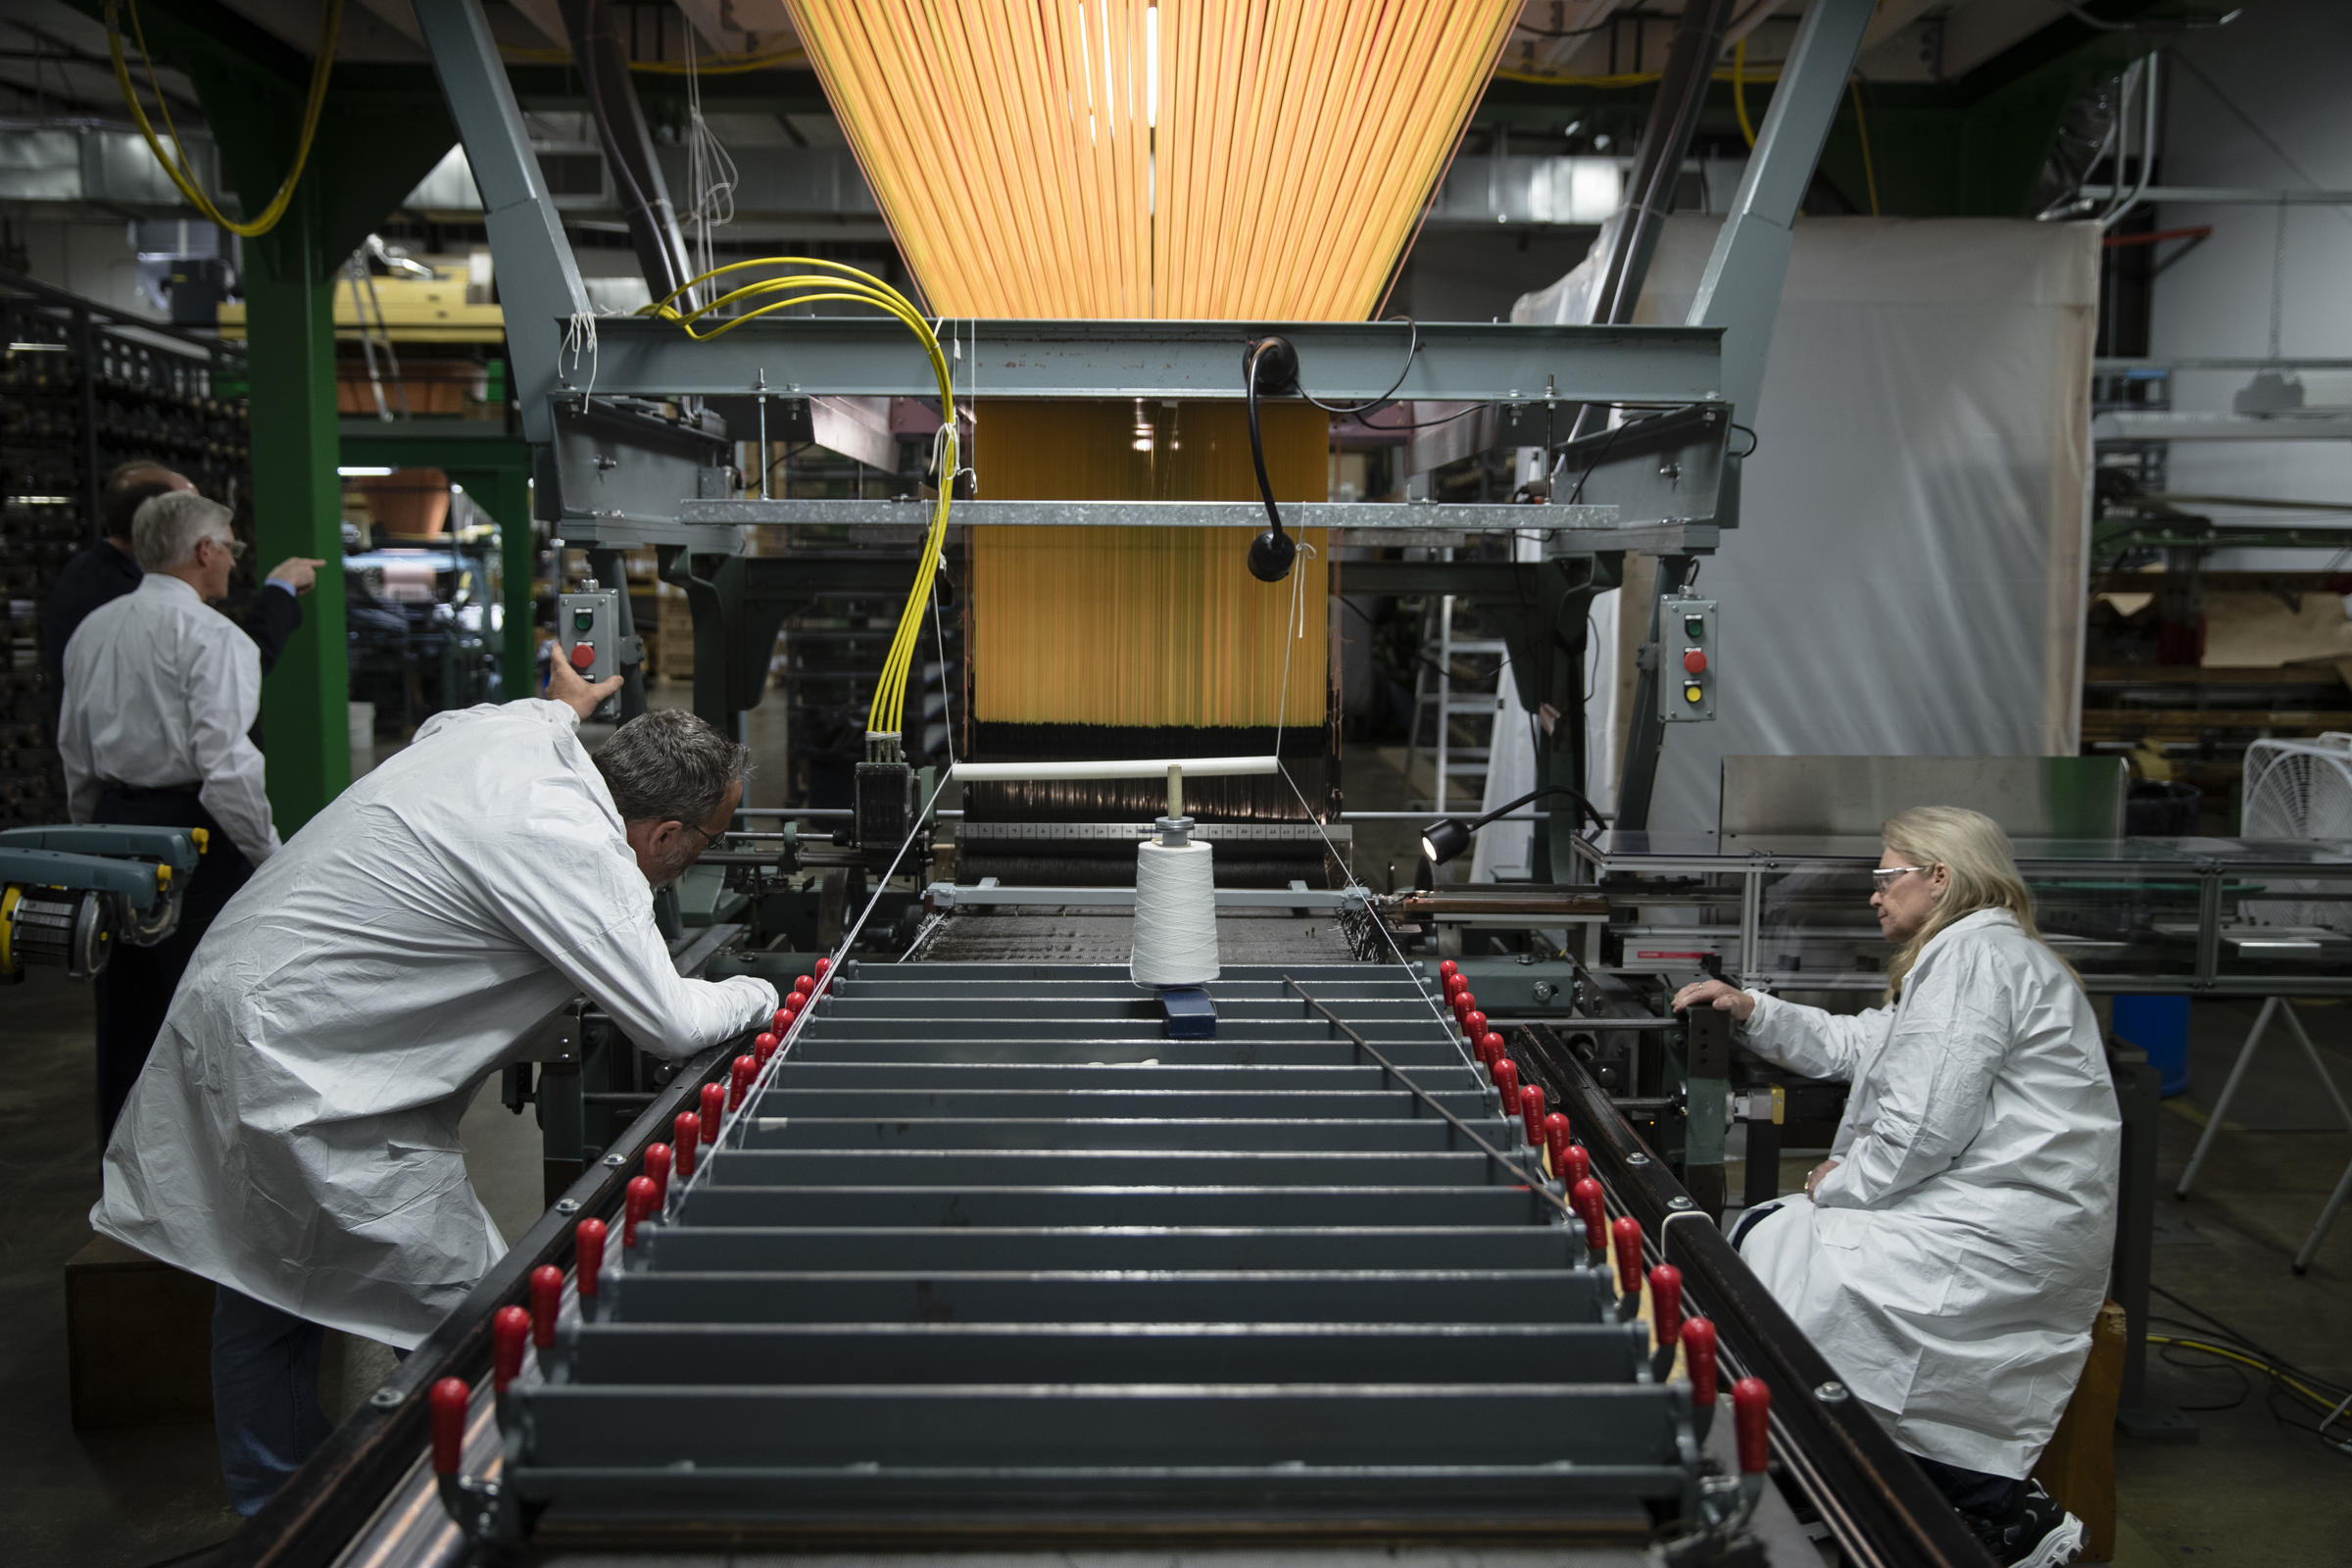 Workers manufacture thermal protection systems for NASA at Bally Ribbon Mills in Bally, Pa.